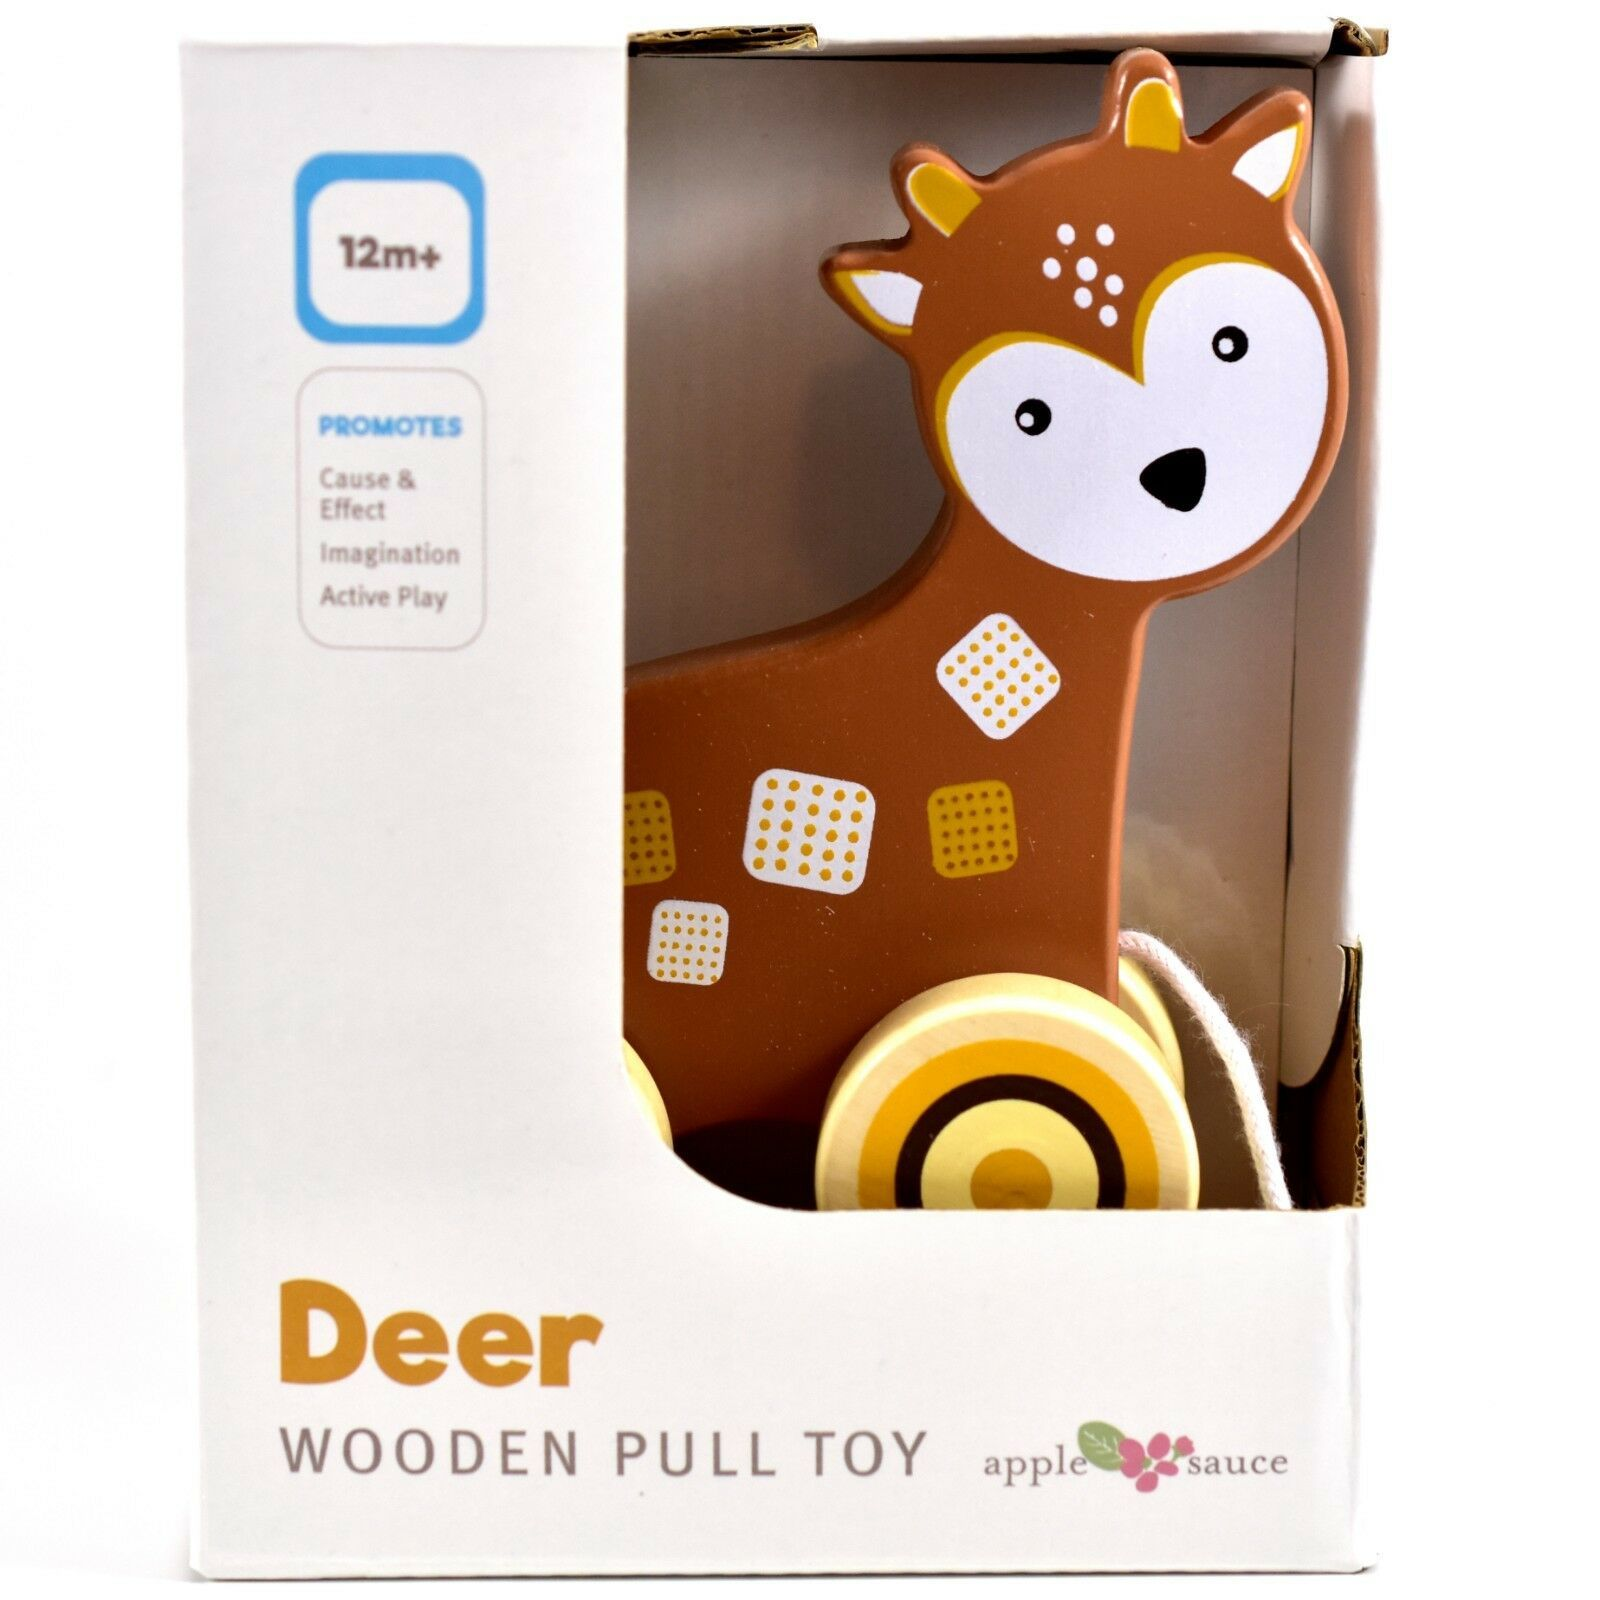 Applesauce Deer Baby Wooden Pull Toy for Toddlers Children Ages 12+ Month